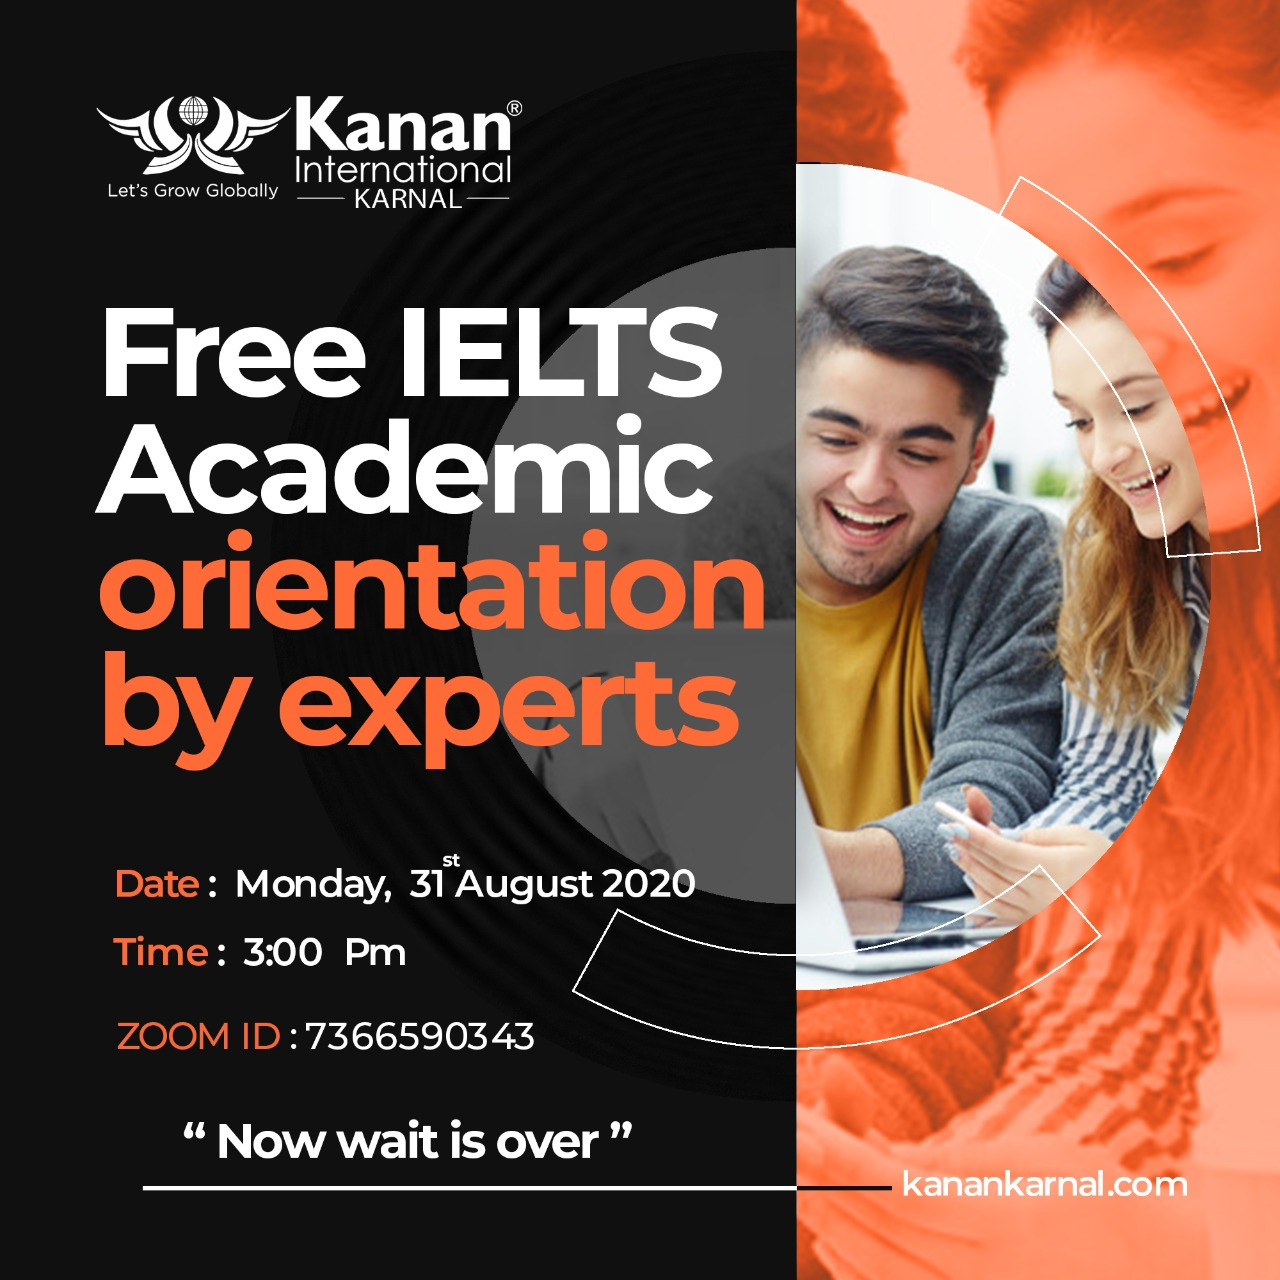 Free IELTS Academic Orientation by Experts